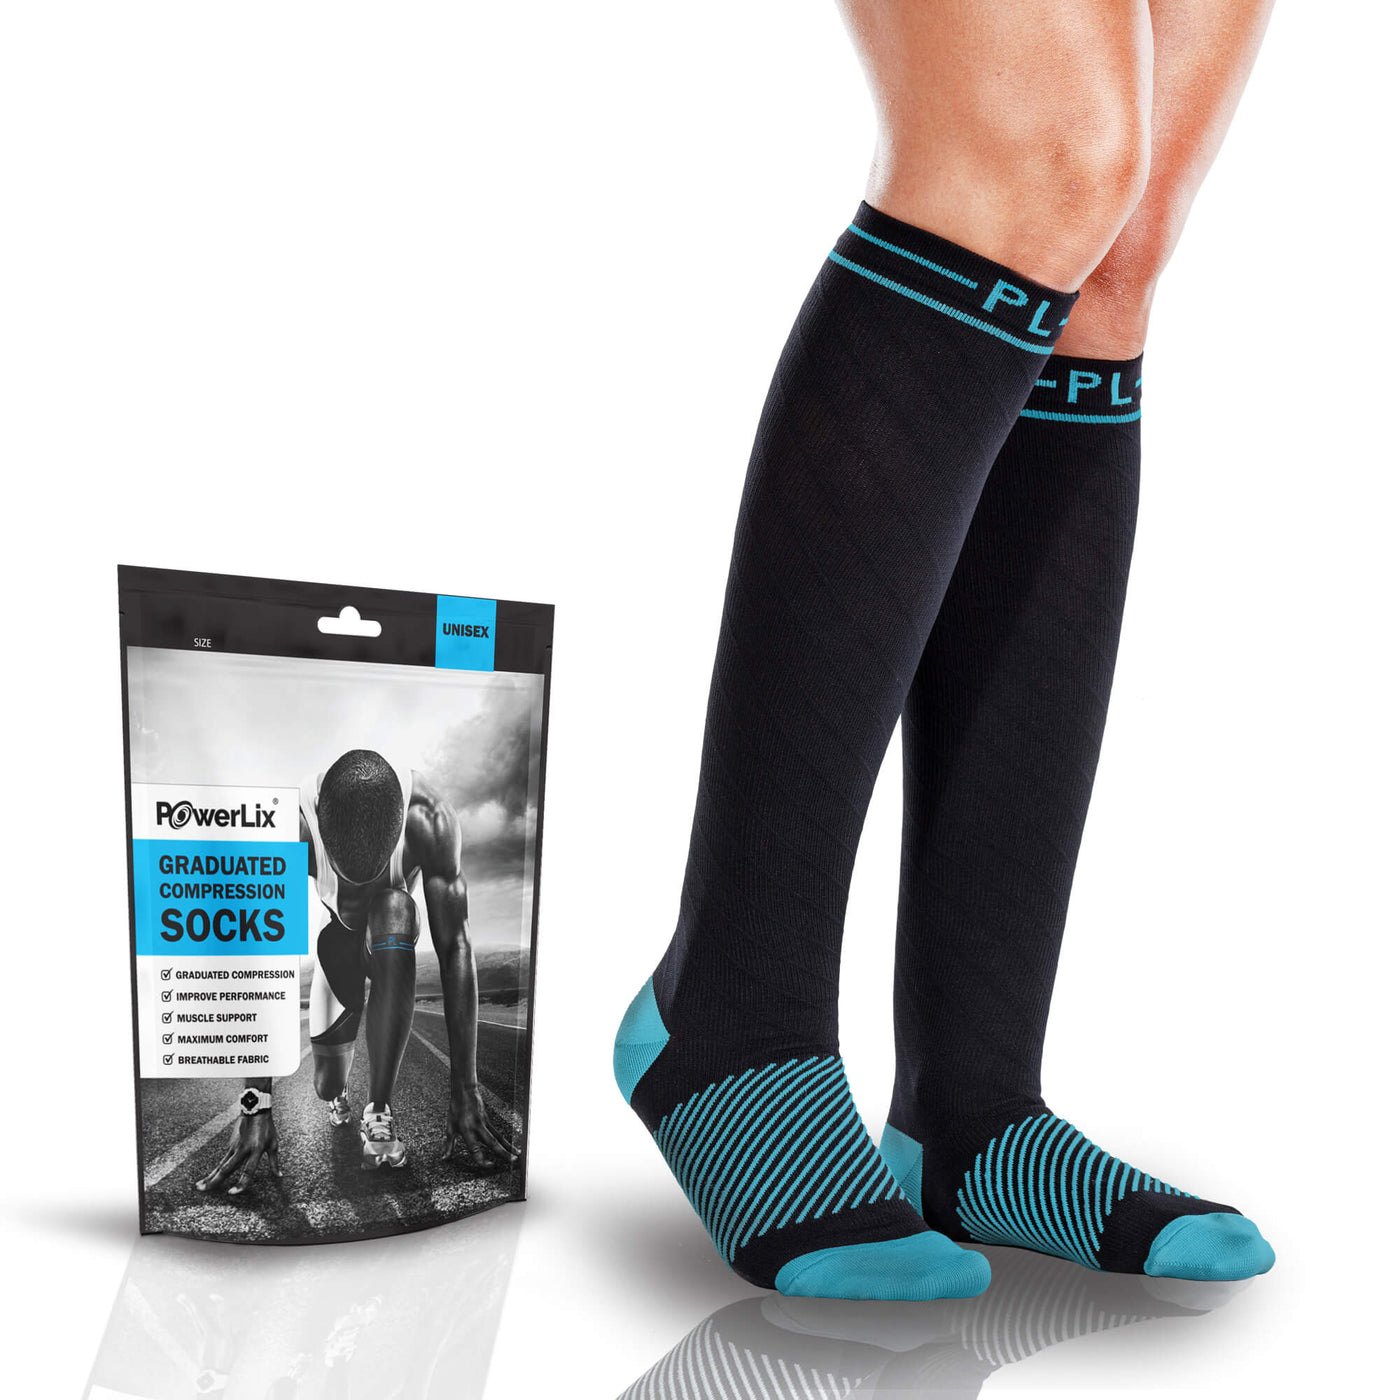 a1b52cb56e Powerlix™ | Compression Socks 2019 Designs | PowerLix